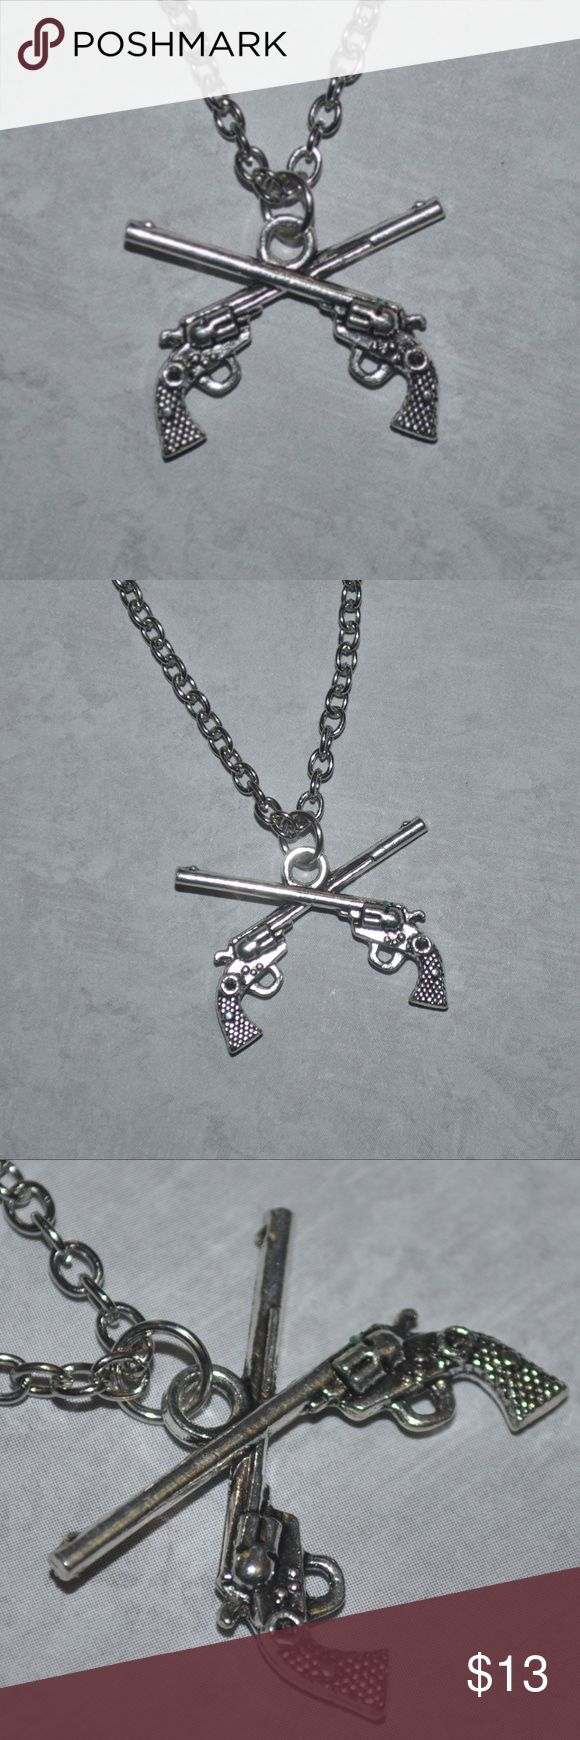 Silver Guns Necklace Brand New / tags: guns wicked neat rad bad girl unisex wome…  – My Posh Picks